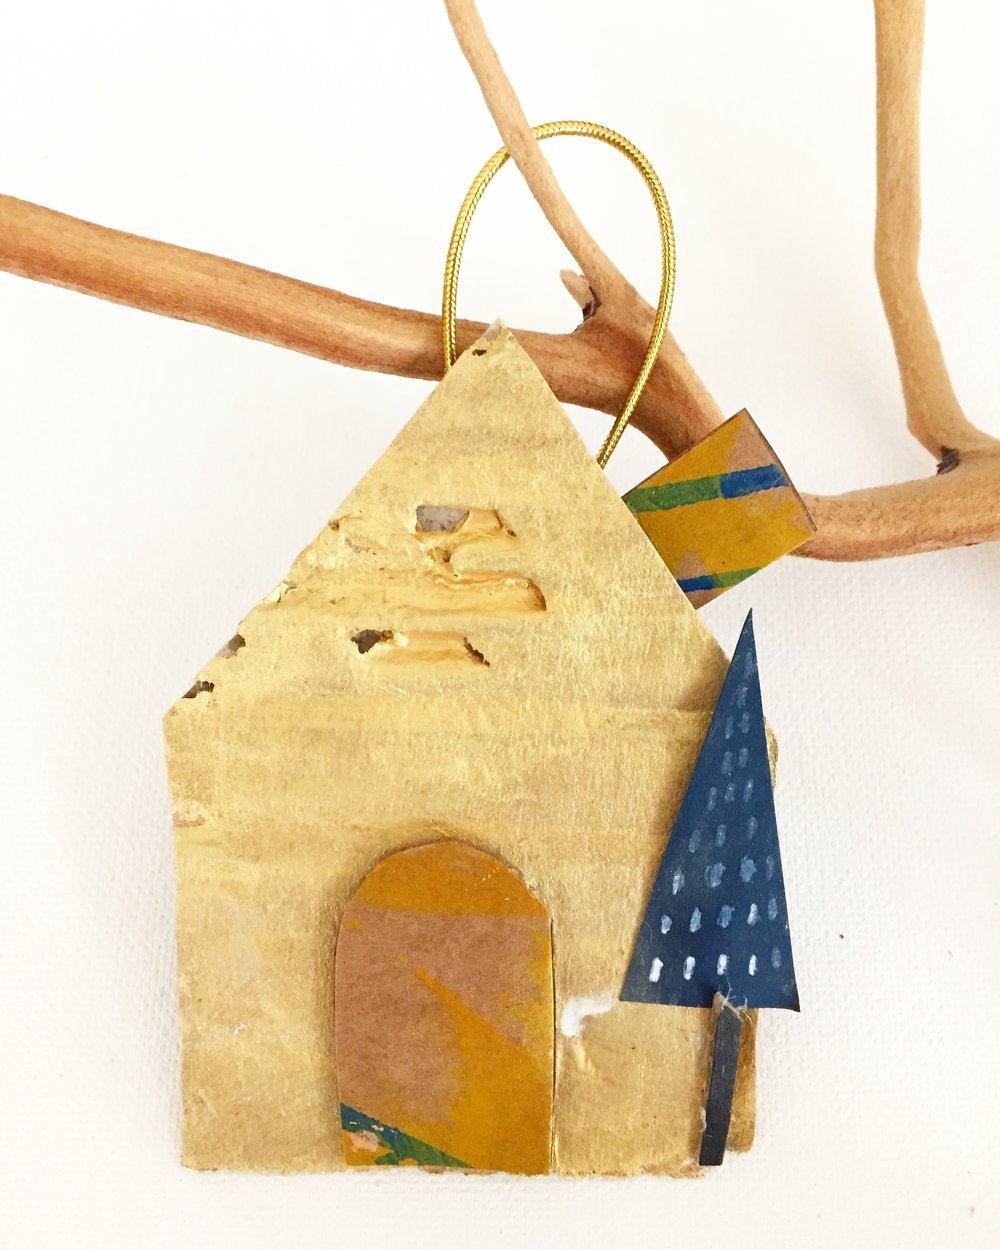 Cardboard House Ornament - 8